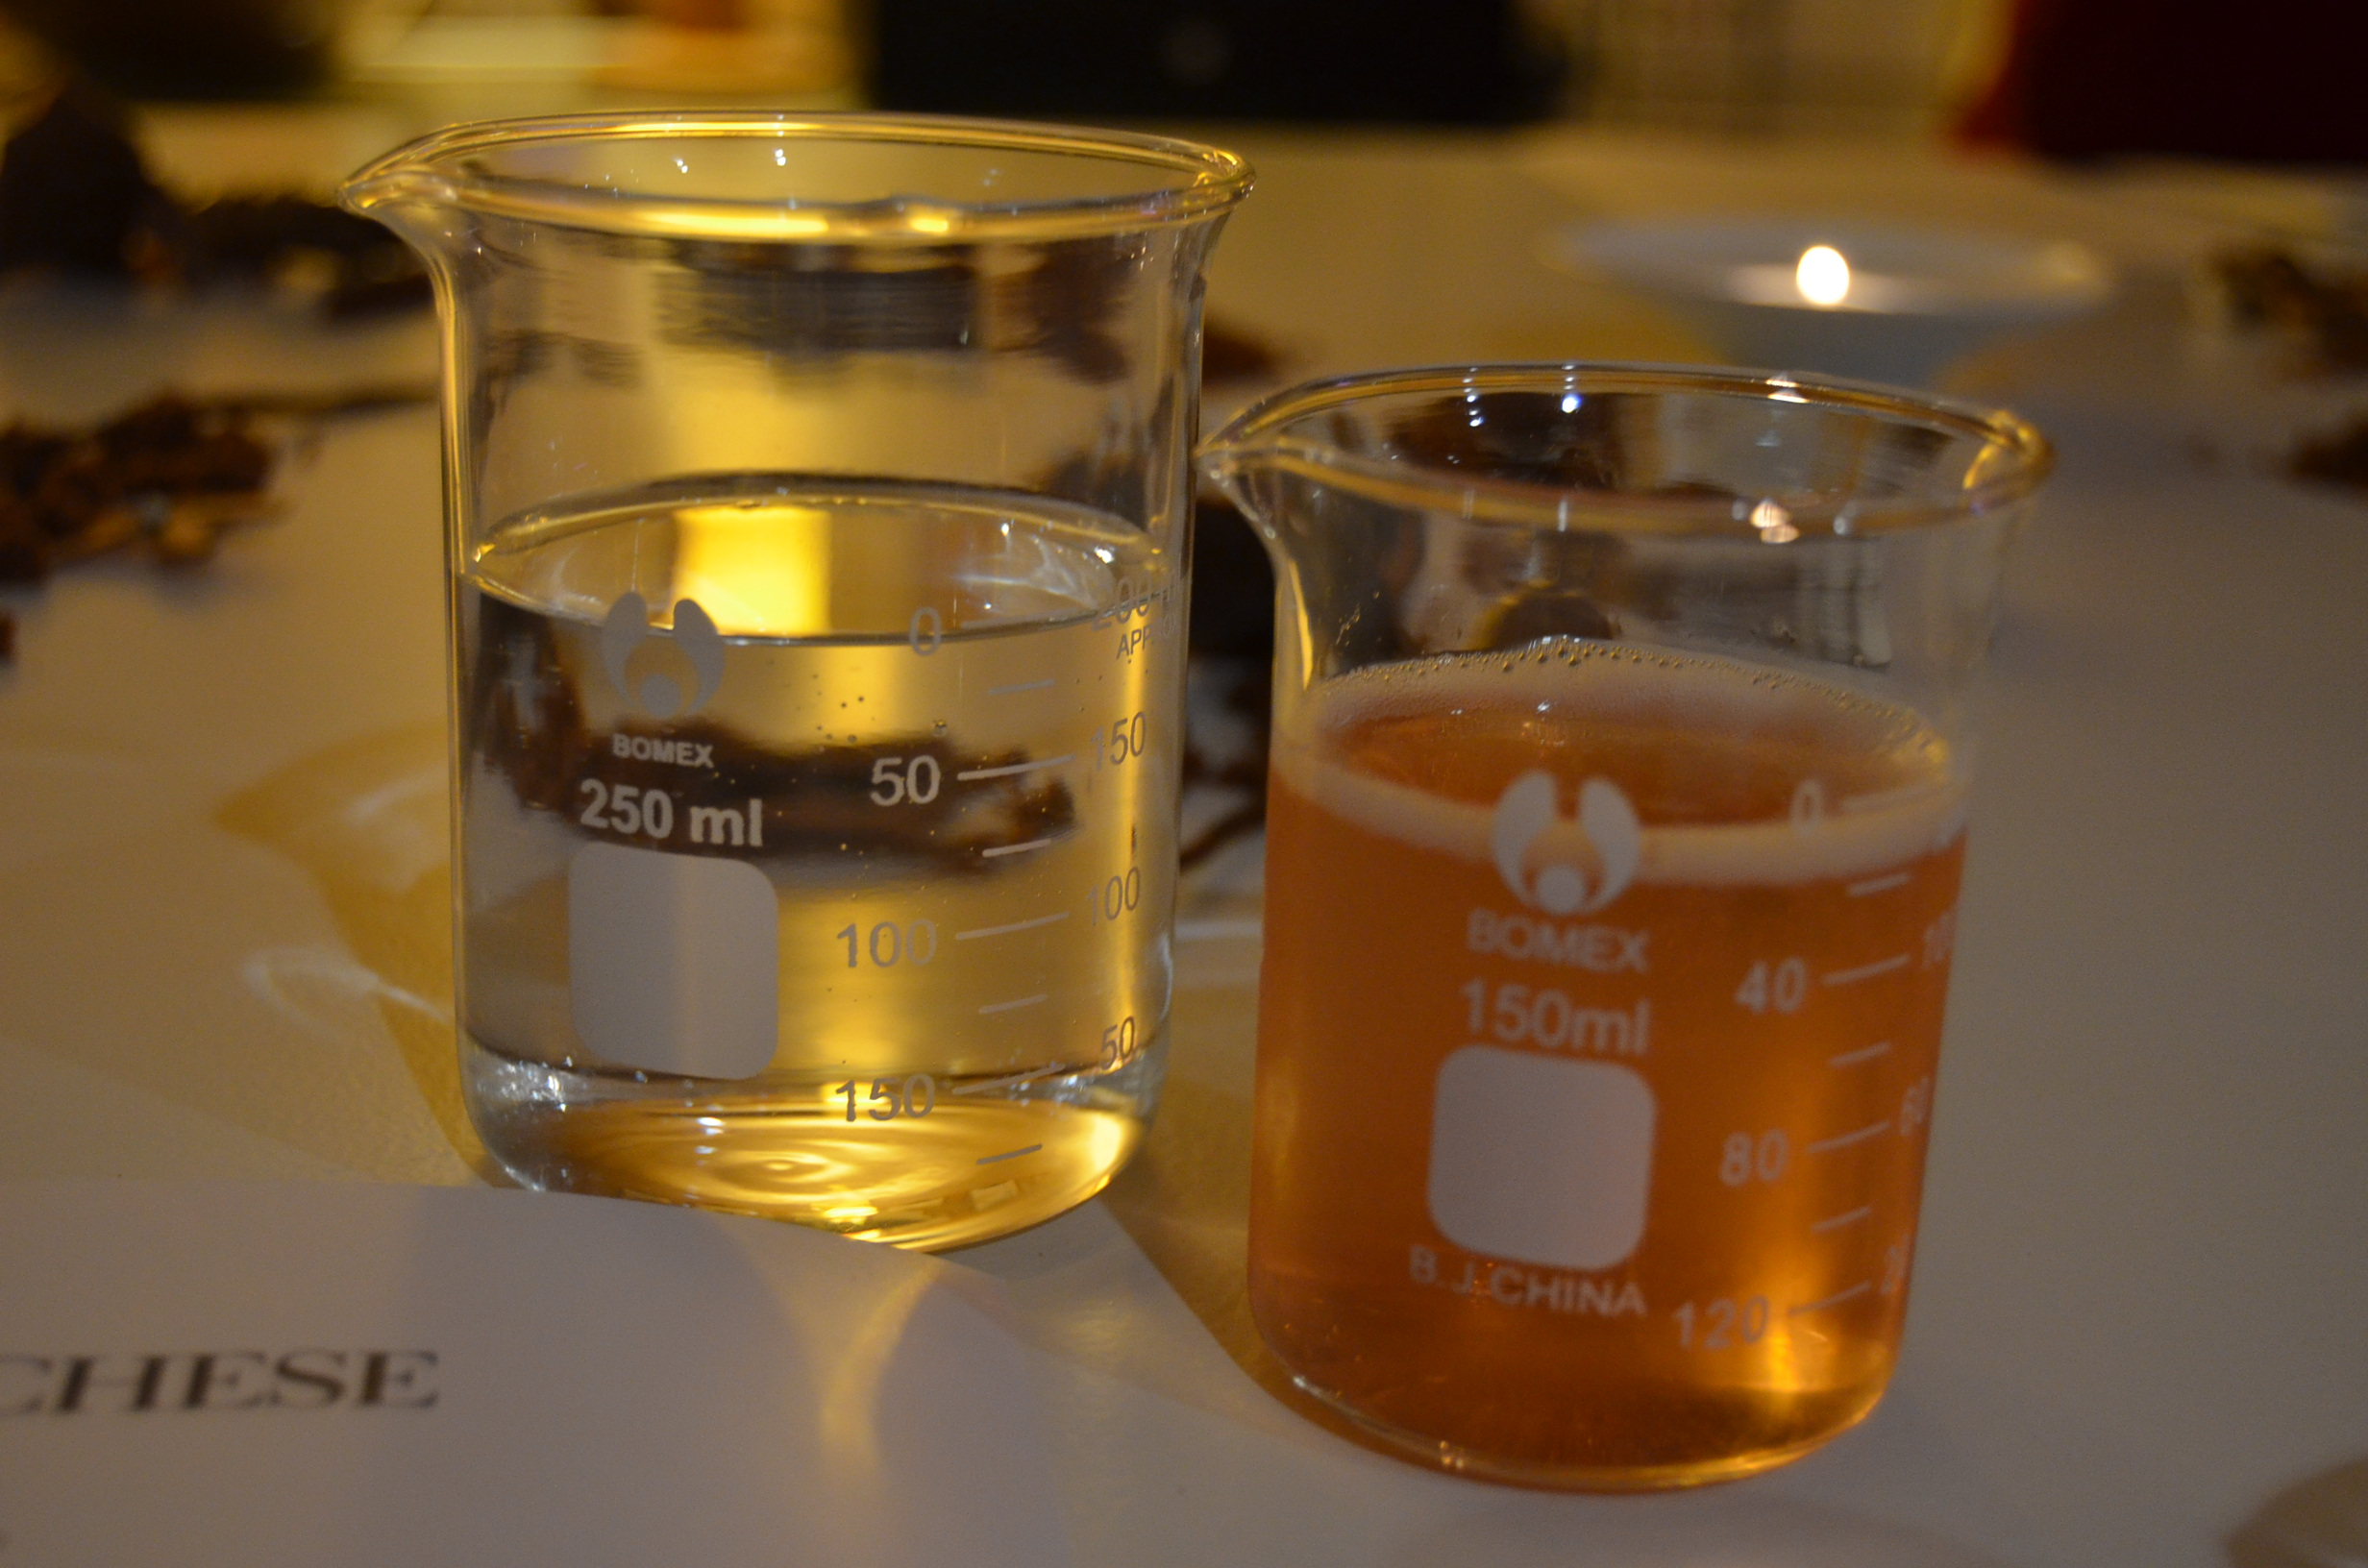 Accompanying dessert wines served in beakers